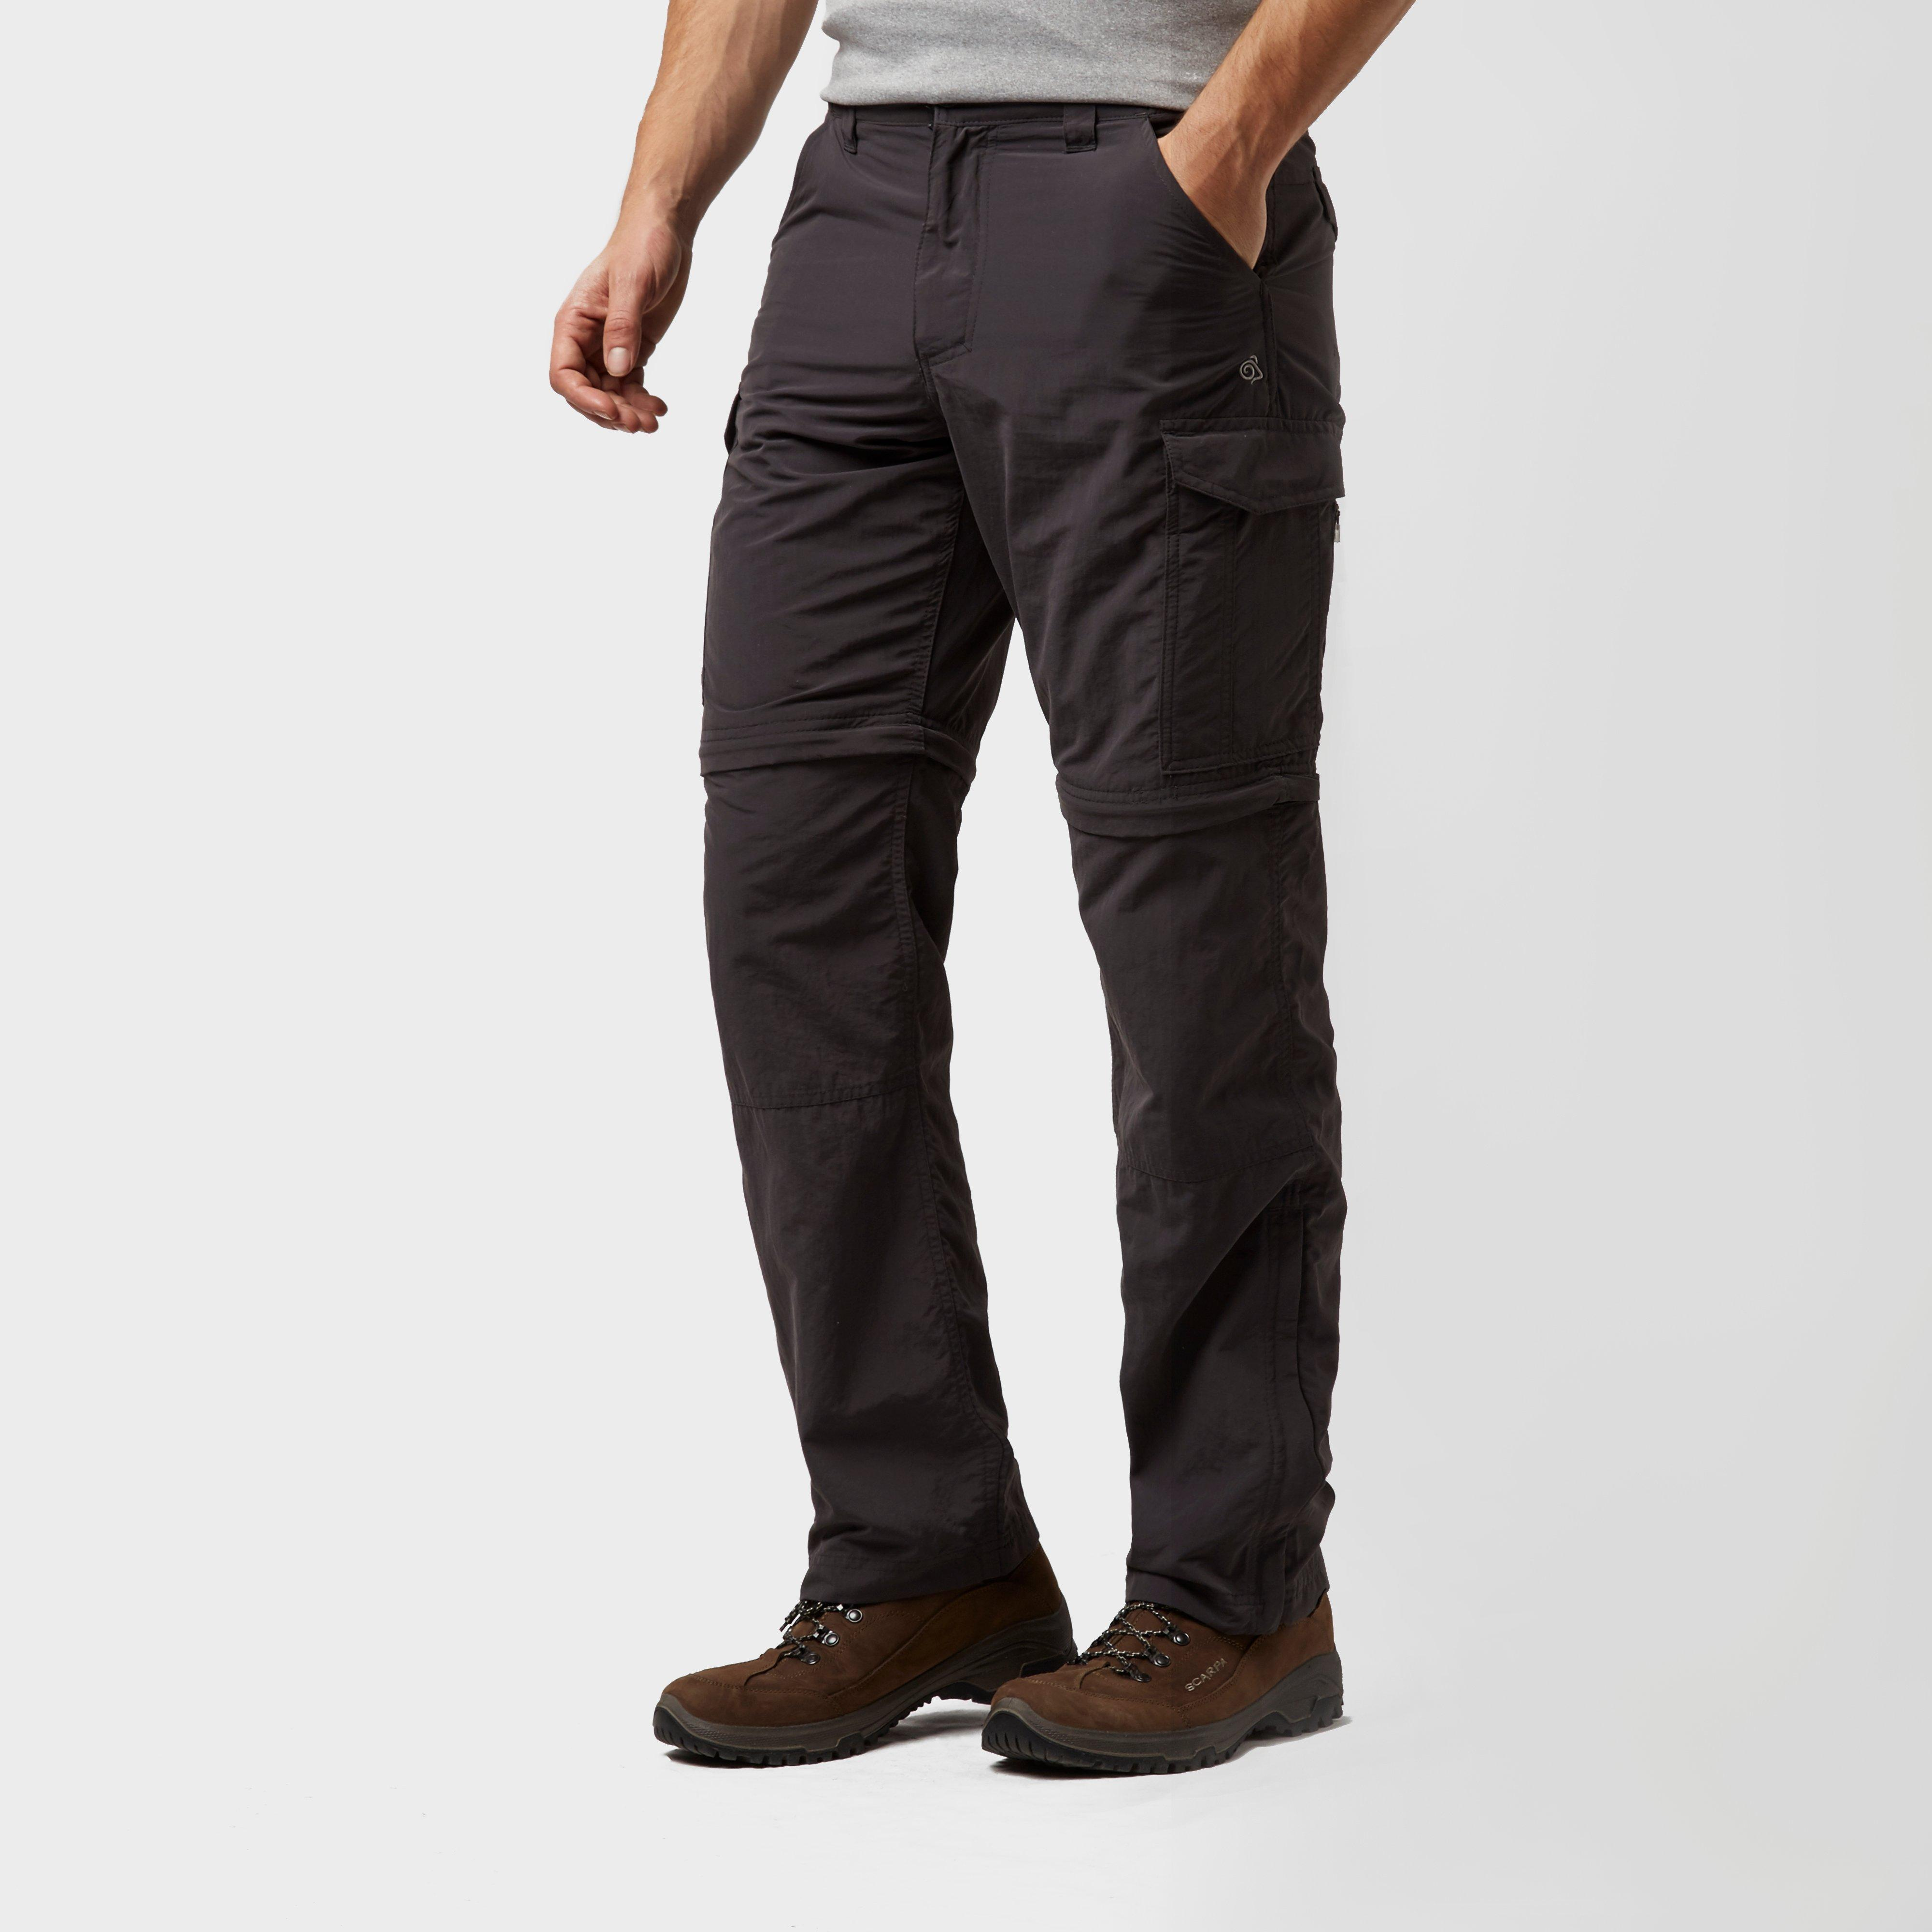 Craghoppers Mens NosiLife Convertible Trousers Grey